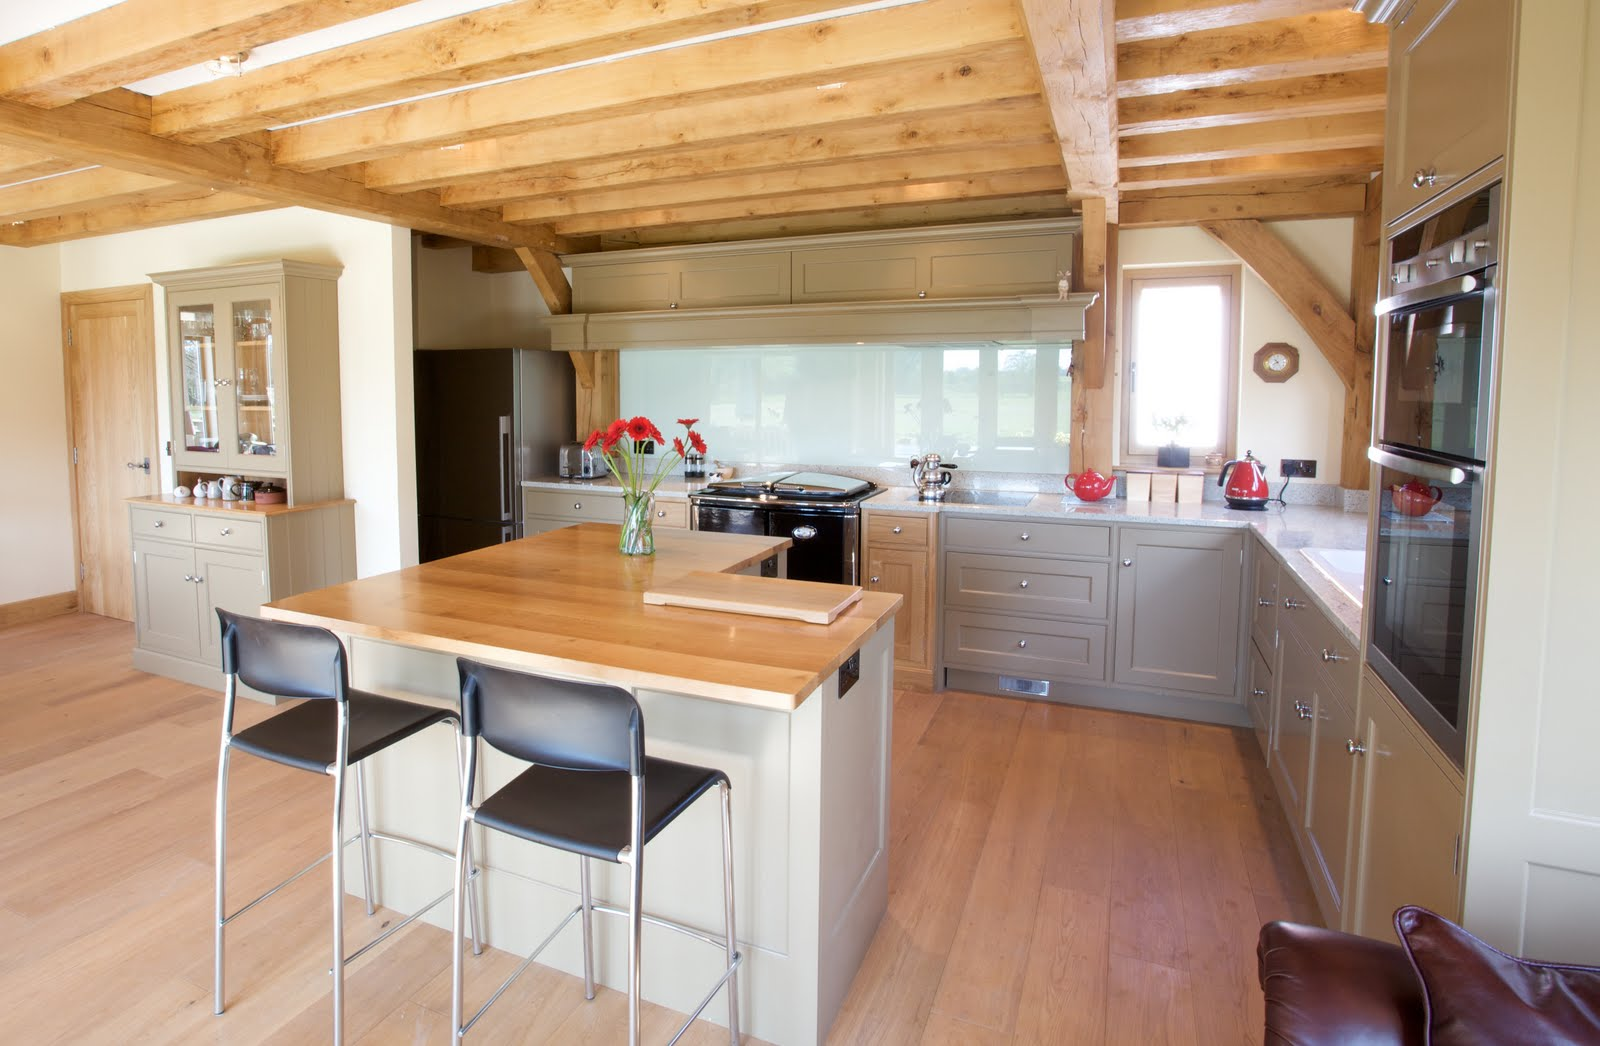 Baker And Baker: A Beautiful Kitchen For A Beautiful Room